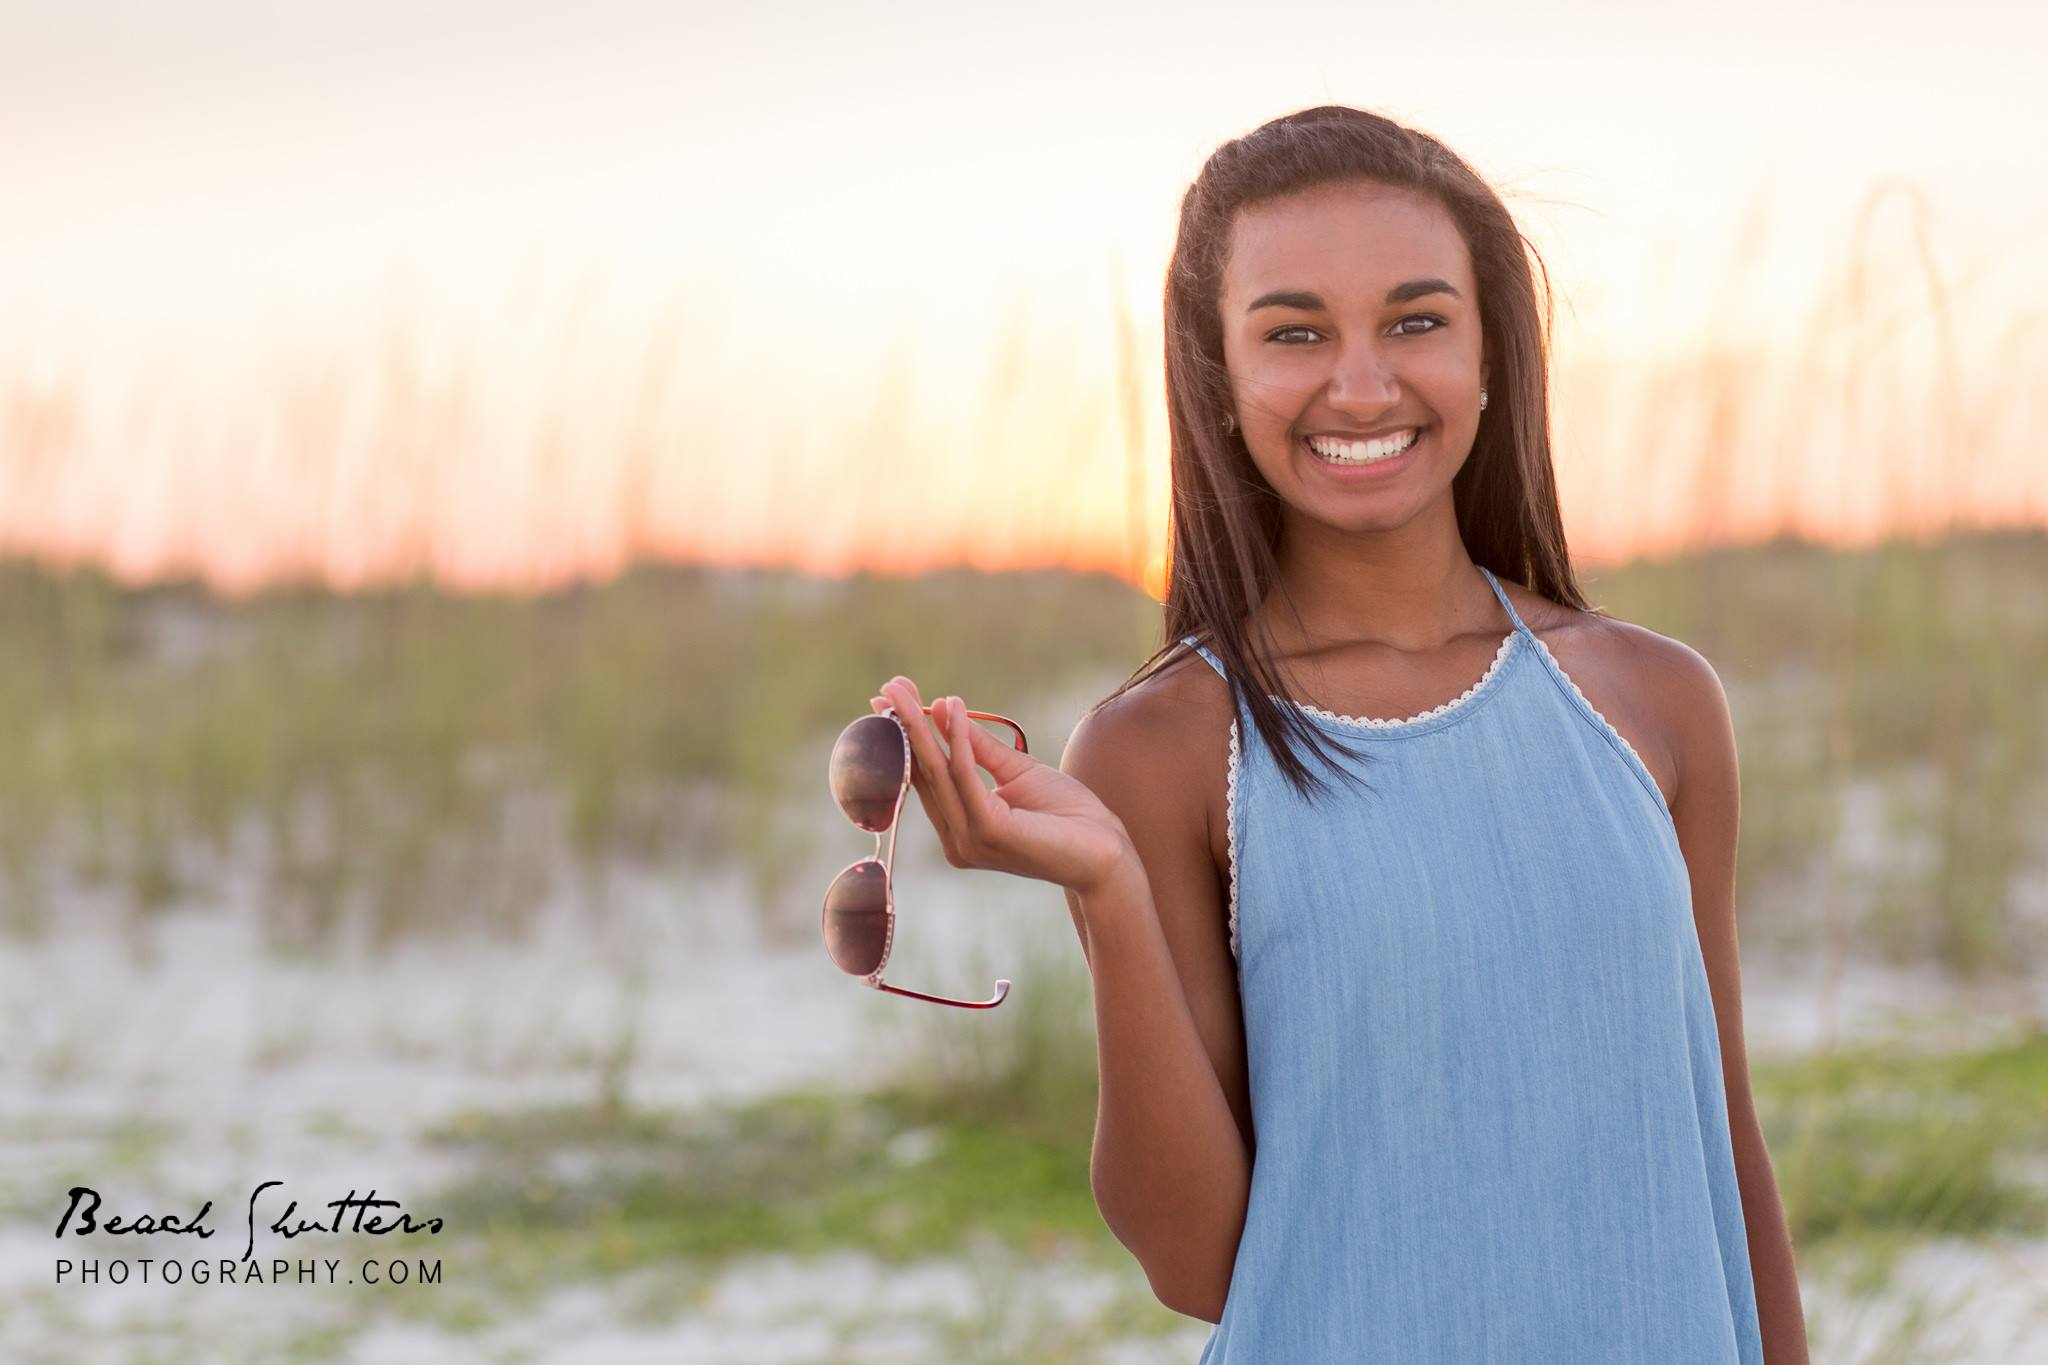 Senior portrait sessions at the beach